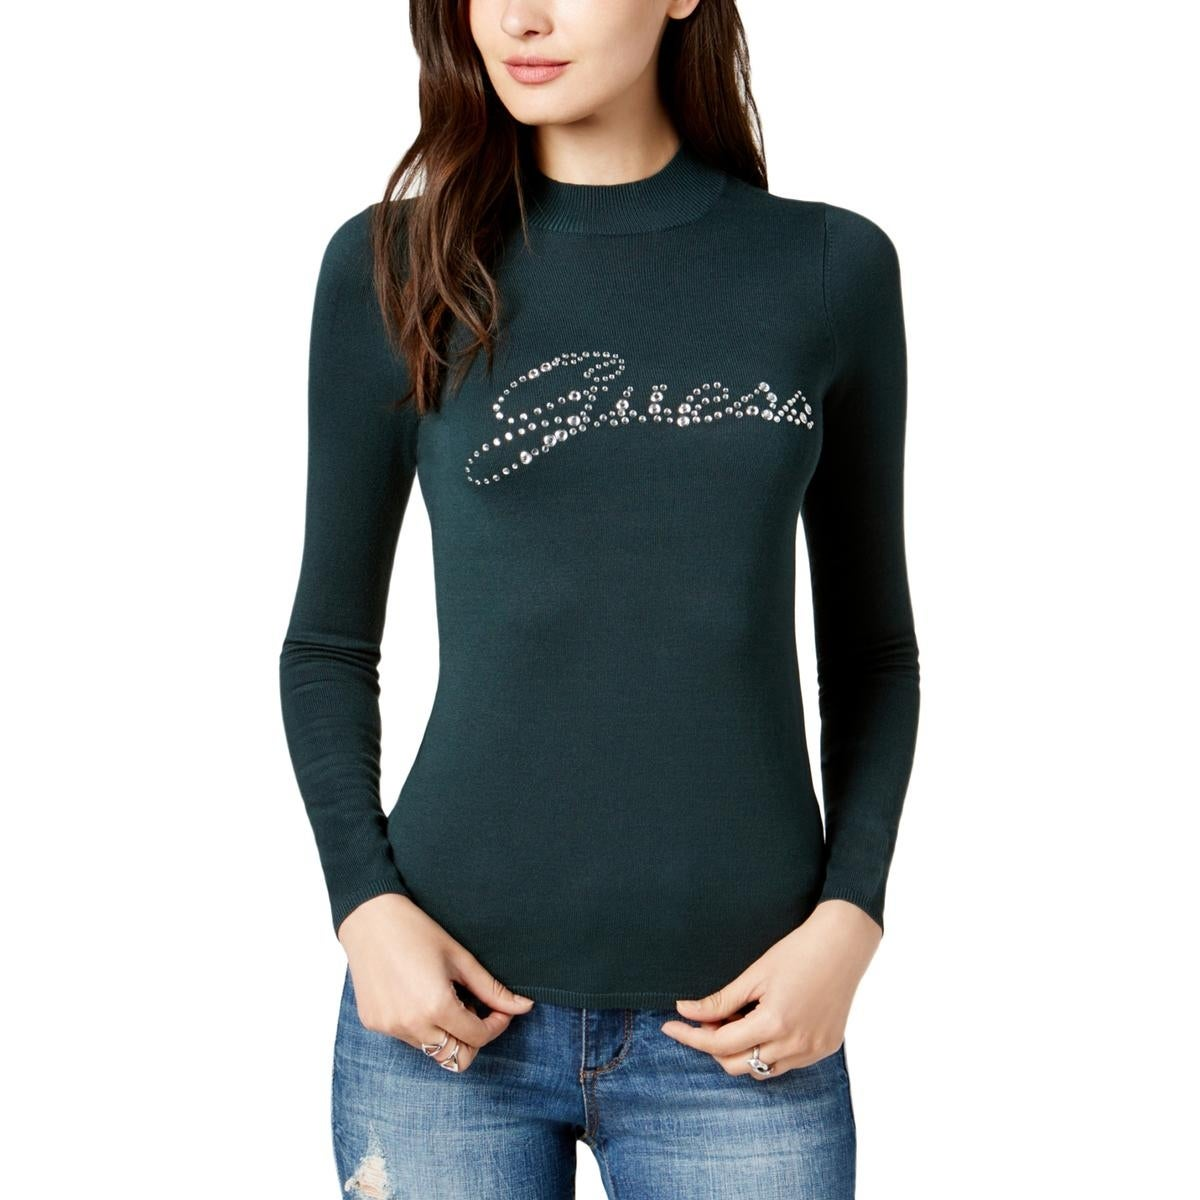 f5a49f6c68f23 Shop Guess Womens Holly Mock Turtleneck Sweater Embellished Logo - Free  Shipping On Orders Over  45 - Overstock - 25577358